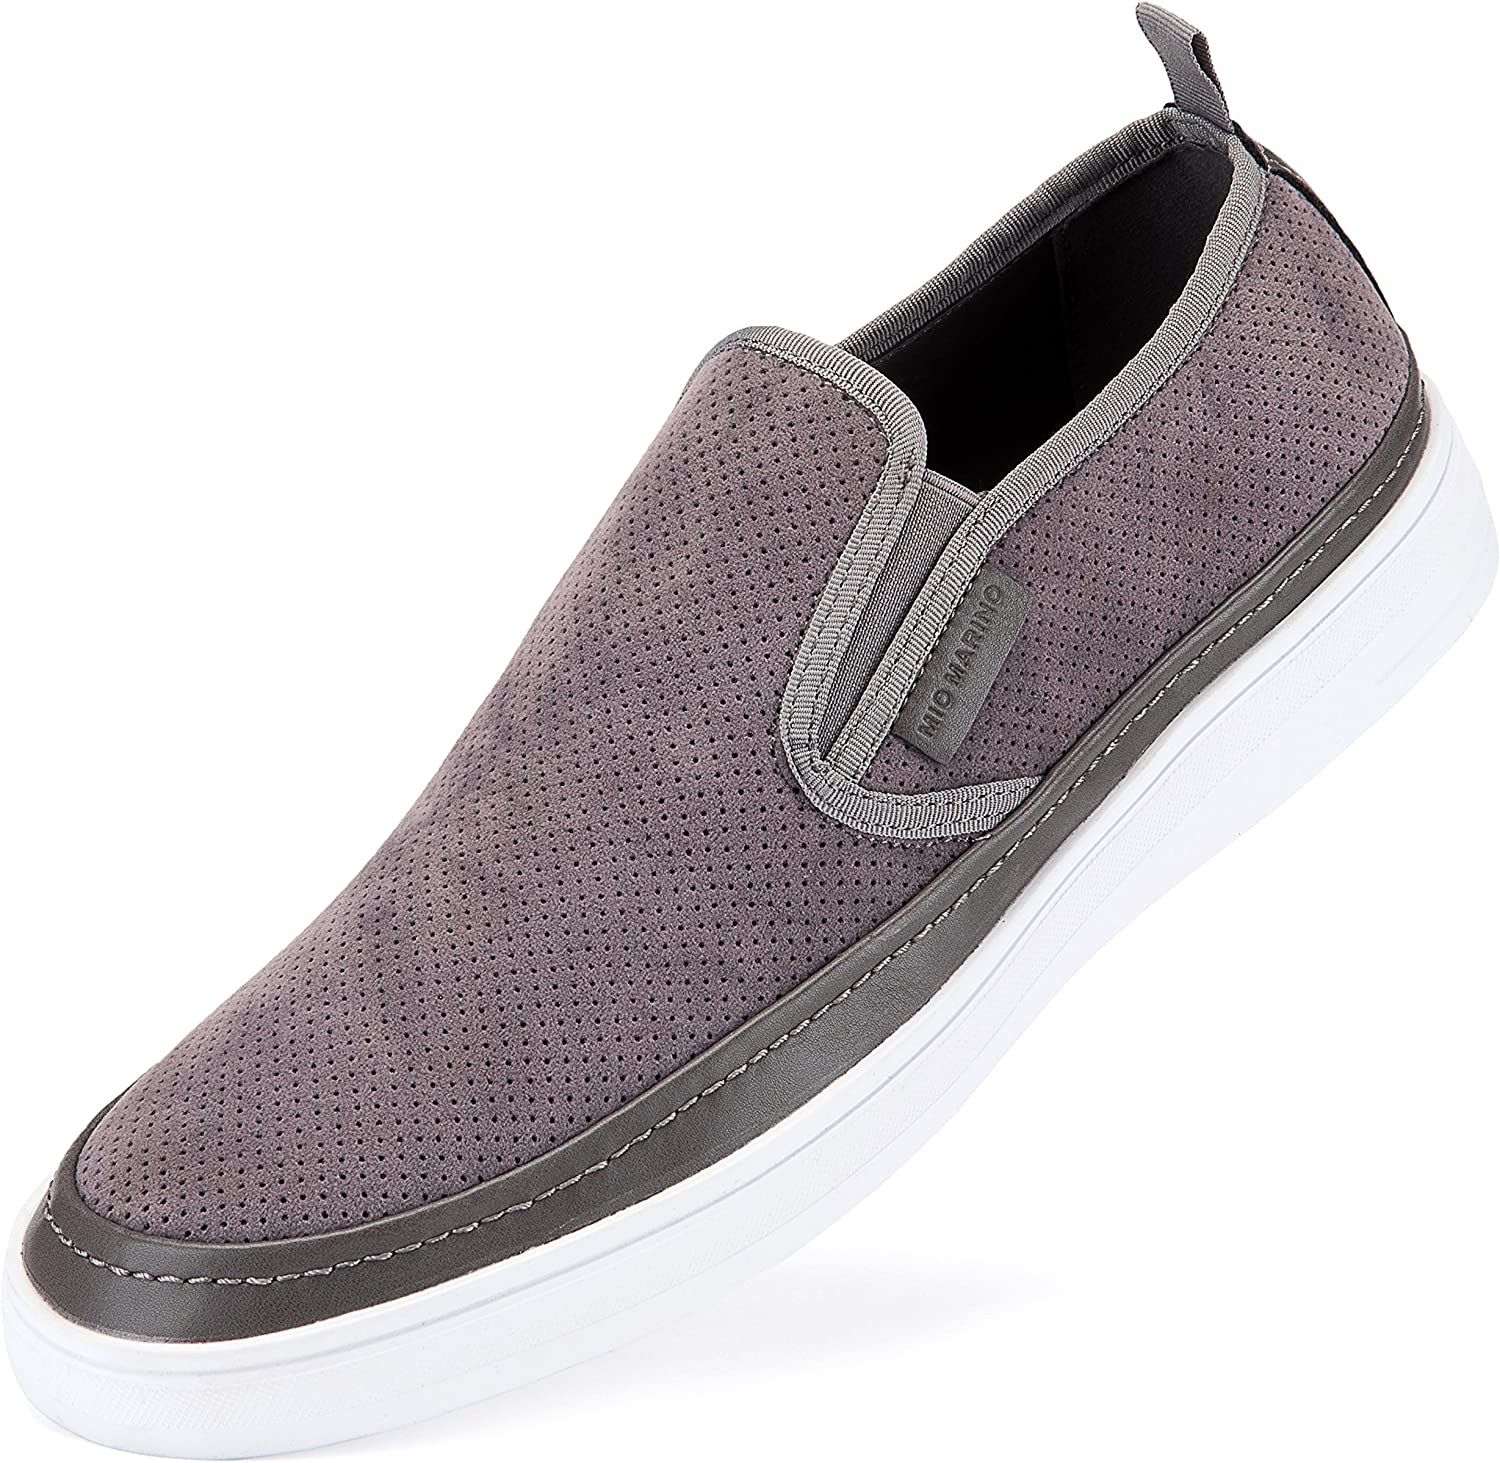 Marino Avenue Fluition Suede Slip On shoes